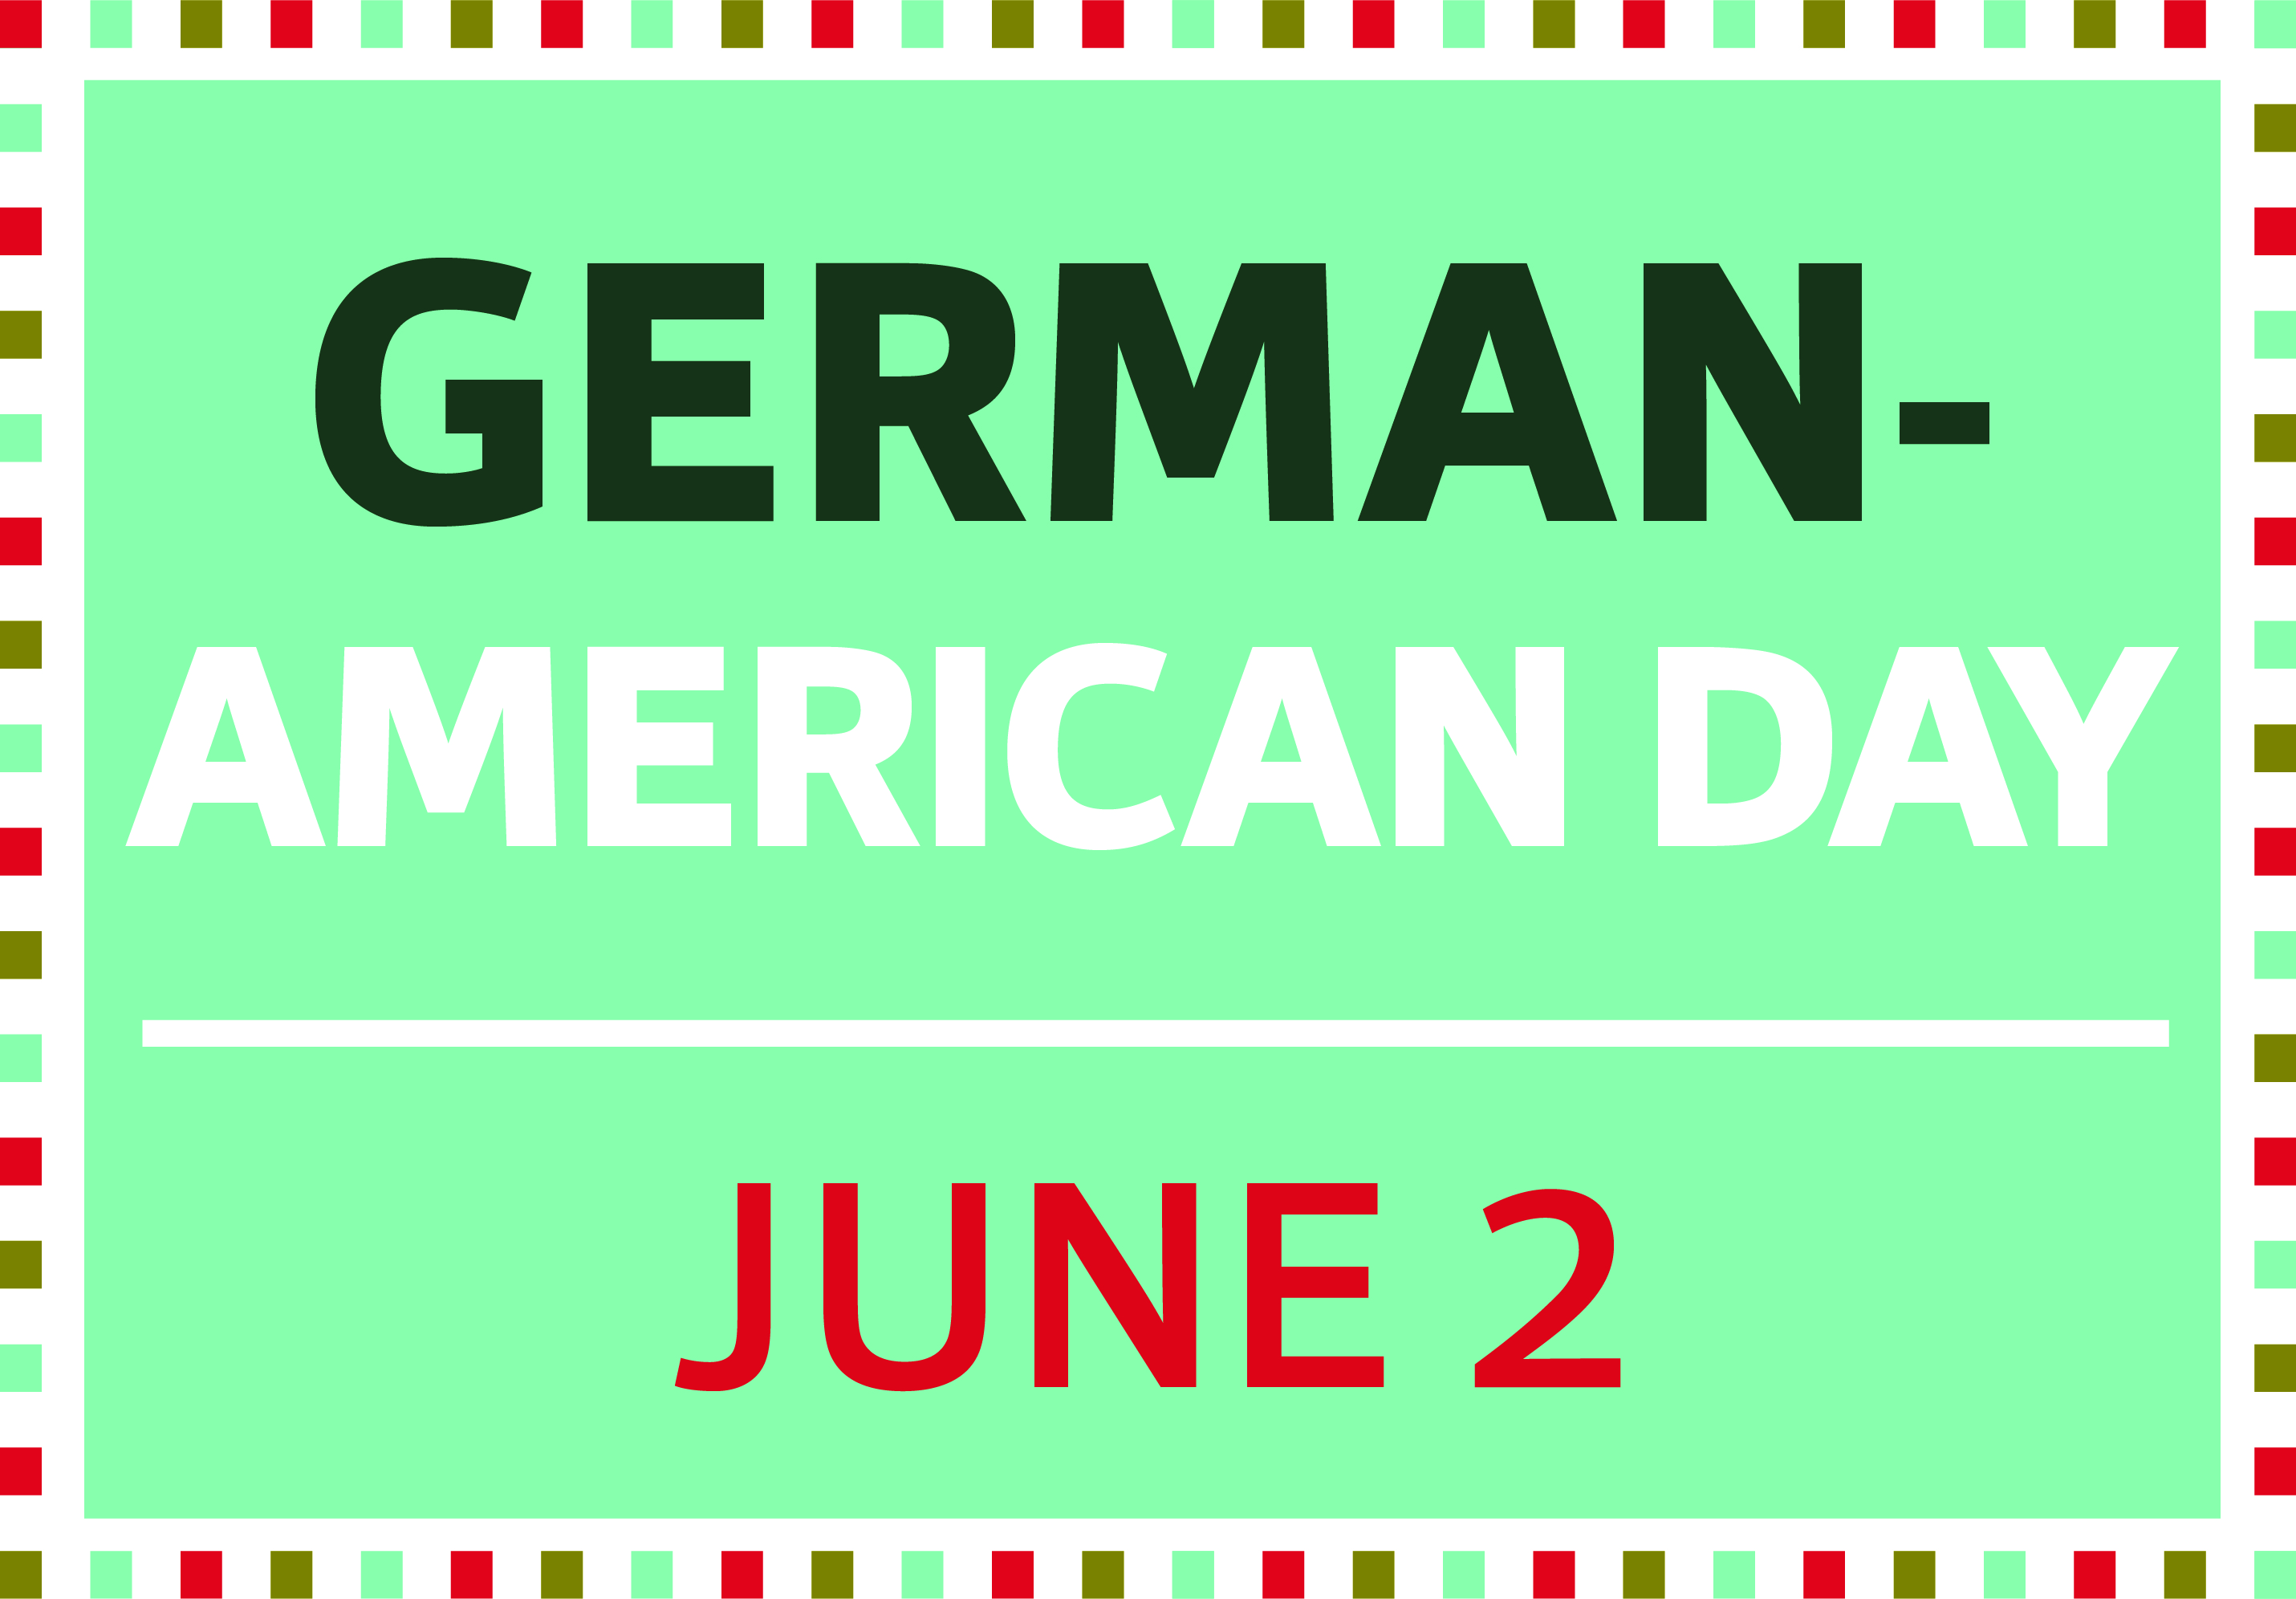 German day webslider